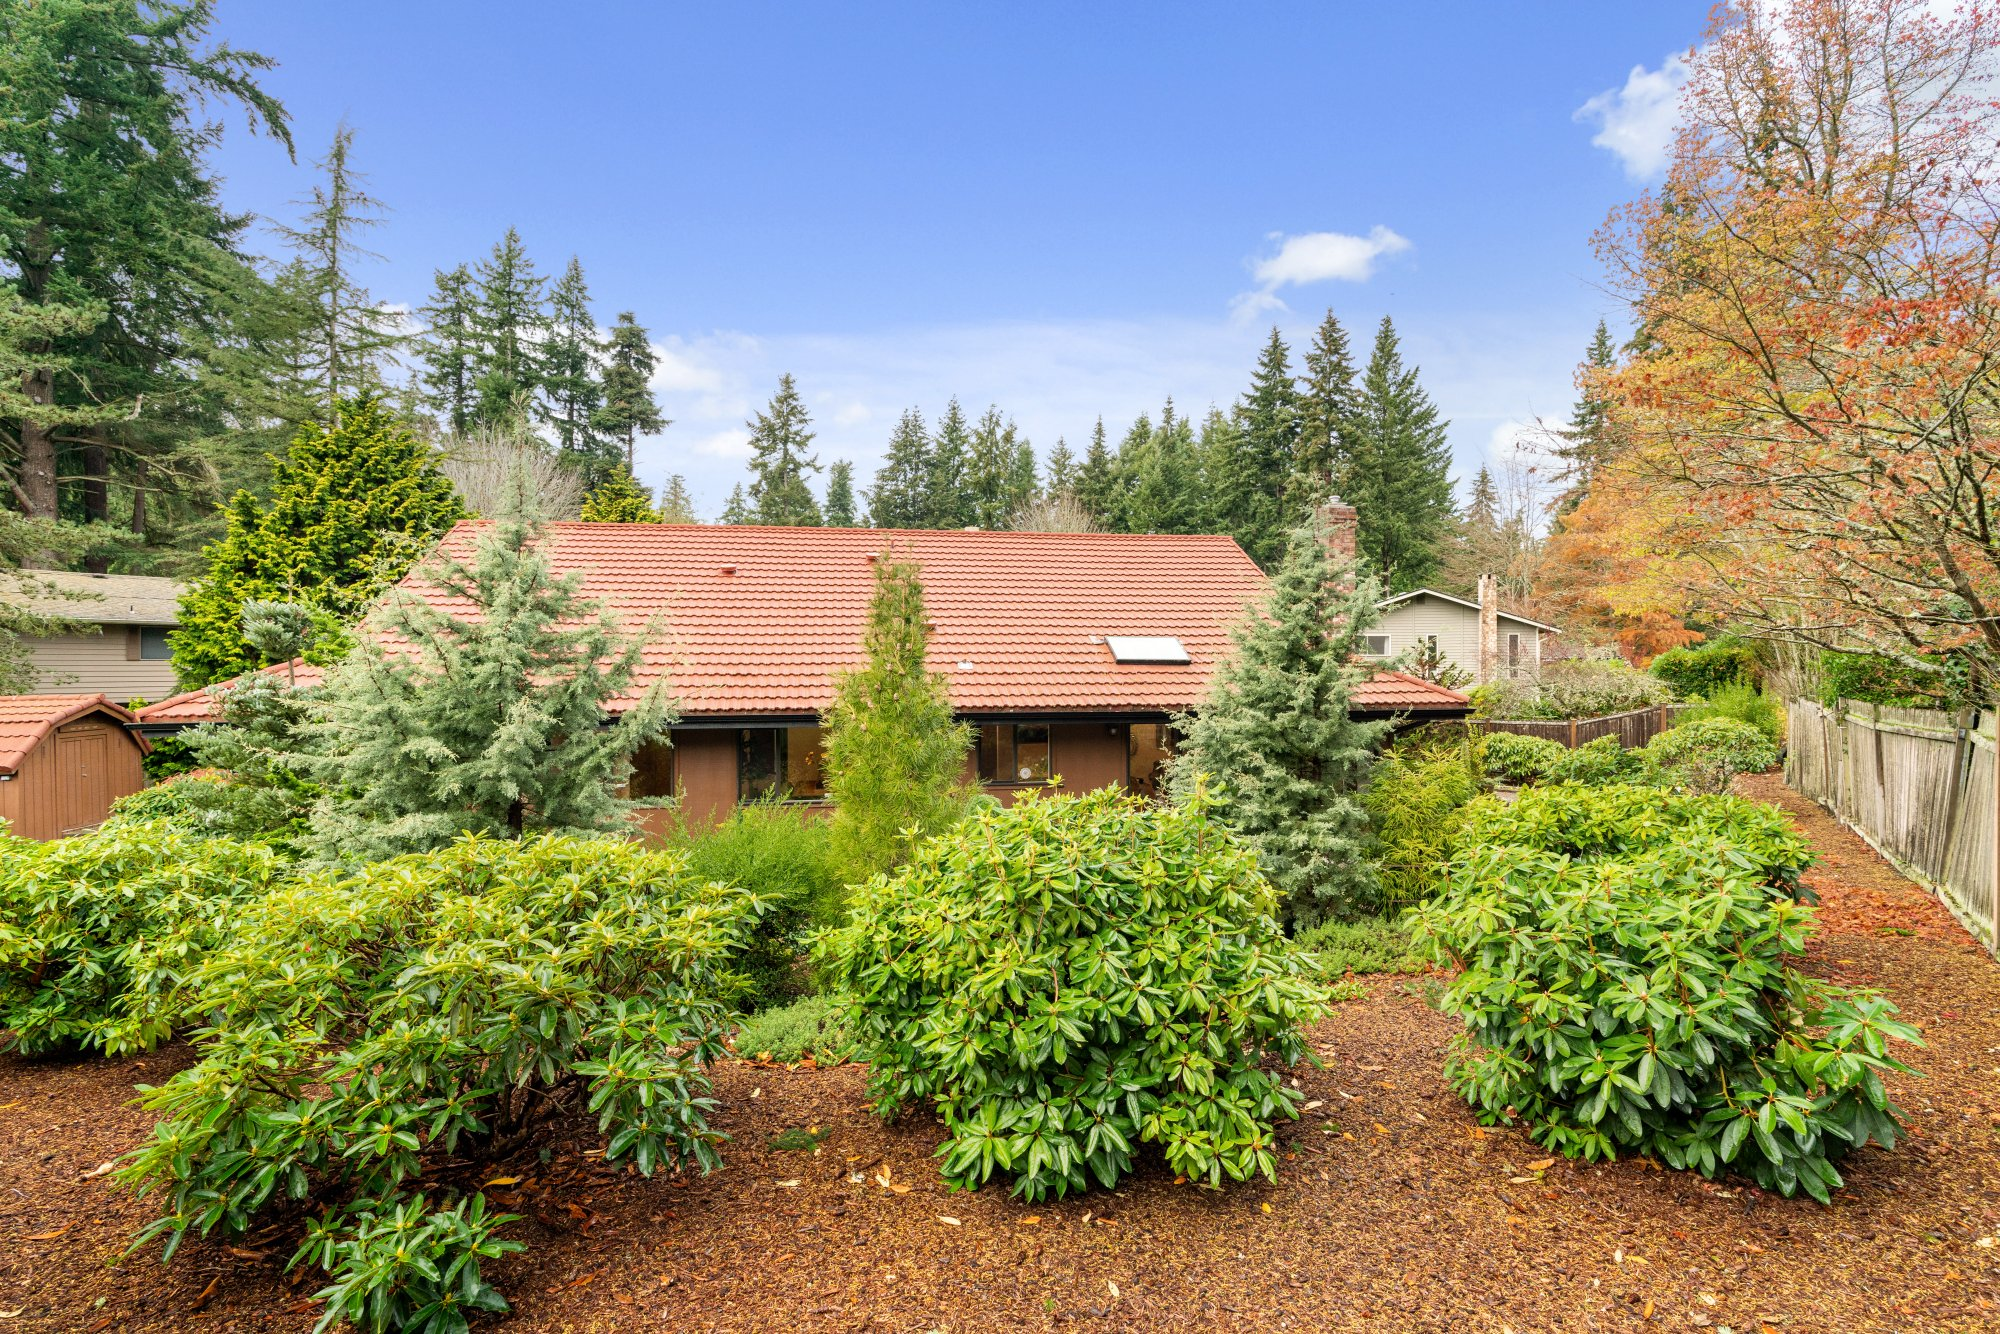 Terry Vehrs_029-22829108thAvenueWest-Edmonds-WA-98020-SMALL